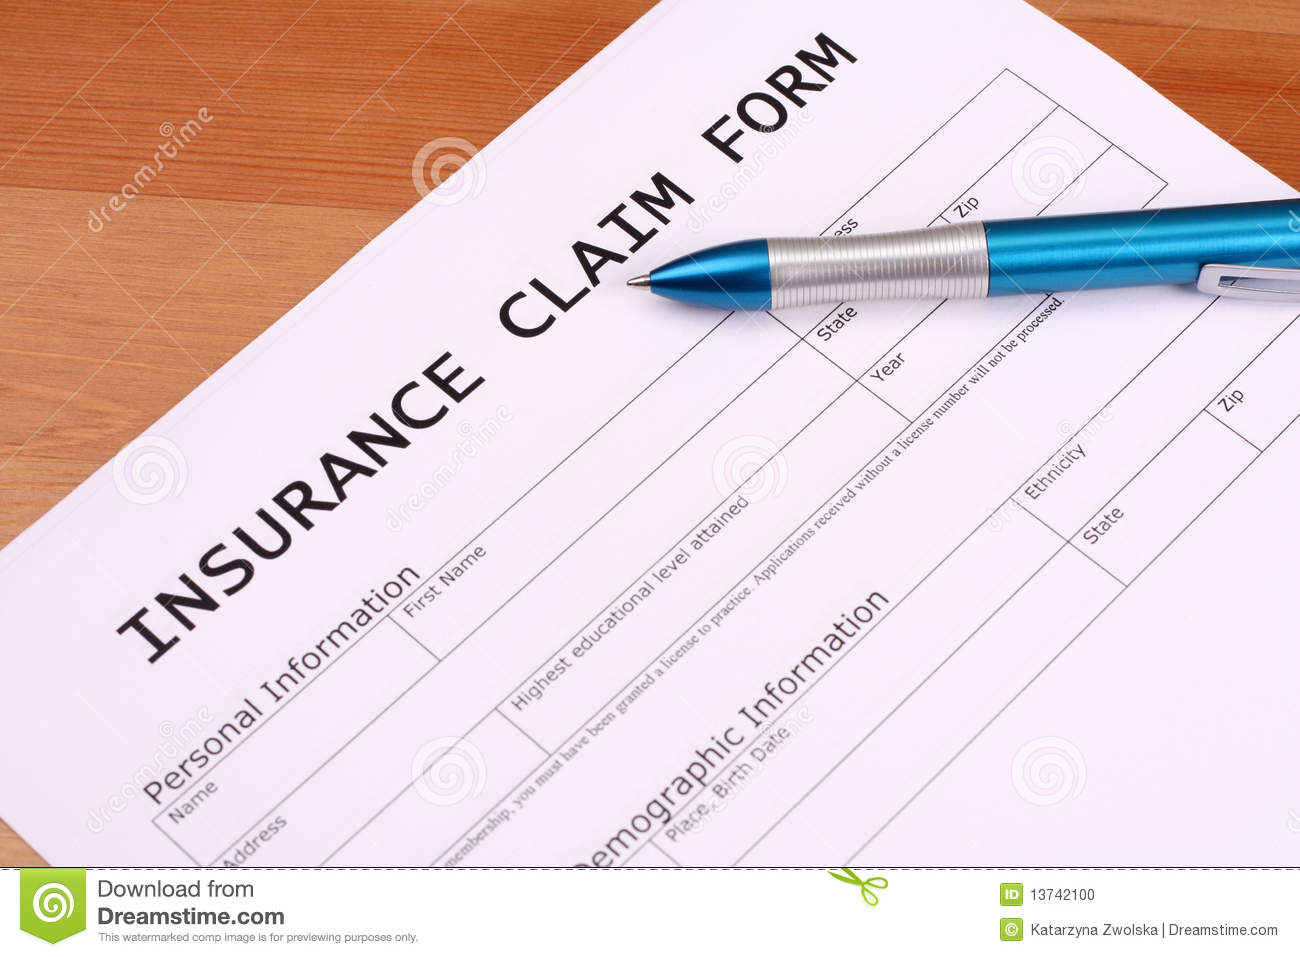 how to make a pet insurance claim prime